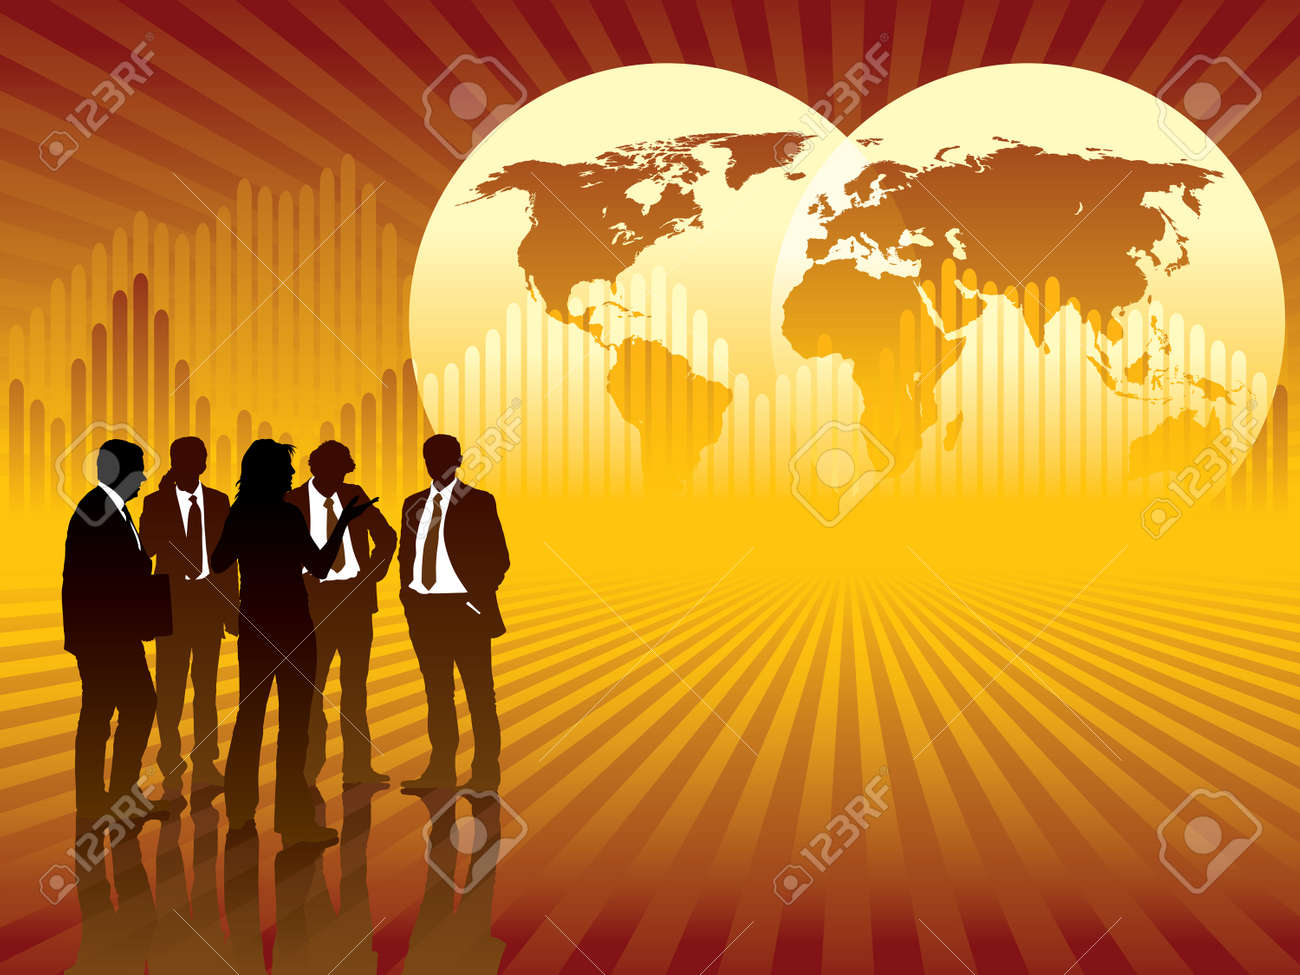 People are talking, world map and graph in the background, conceptual business illustration. Stock Vector - 3932811